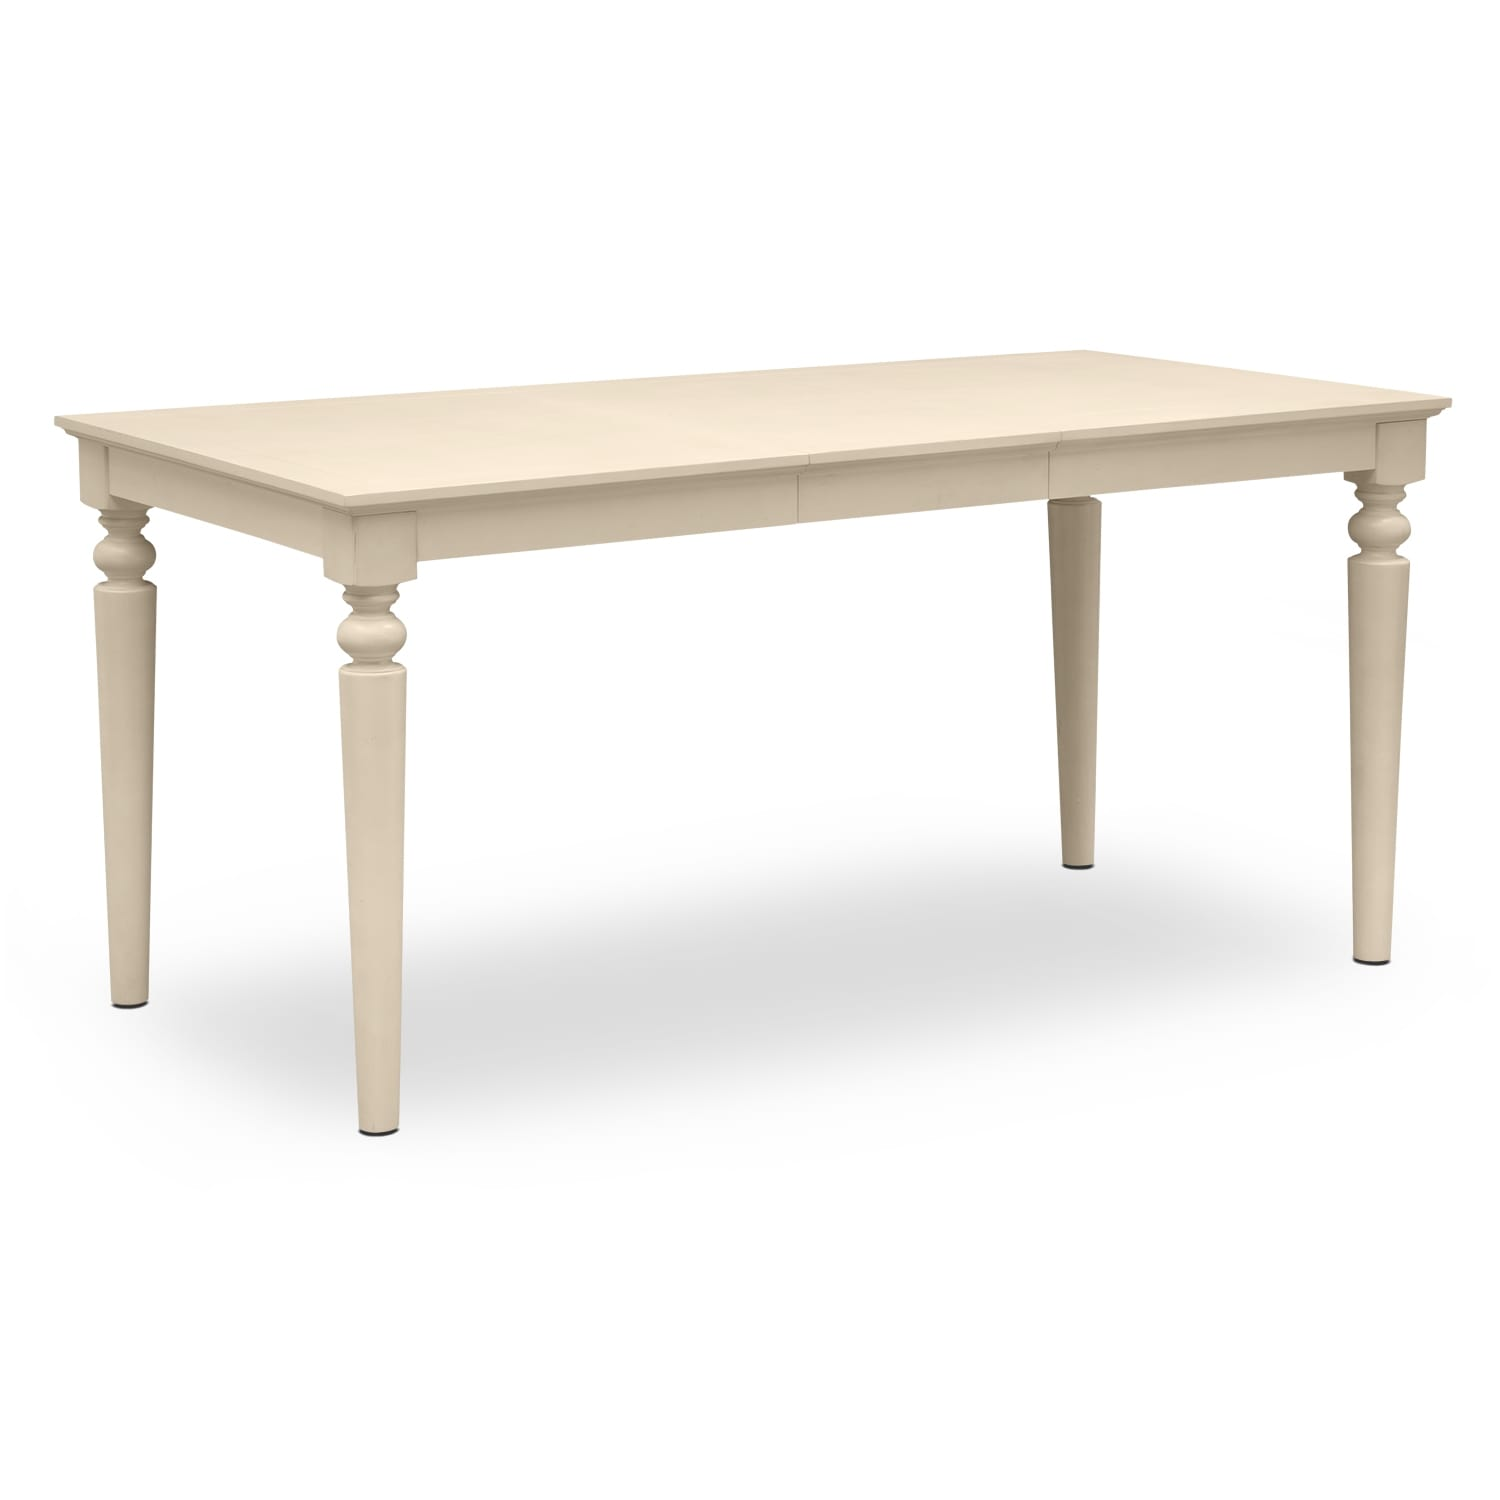 Carnival white ii dining room counter height table value for Dining room table height